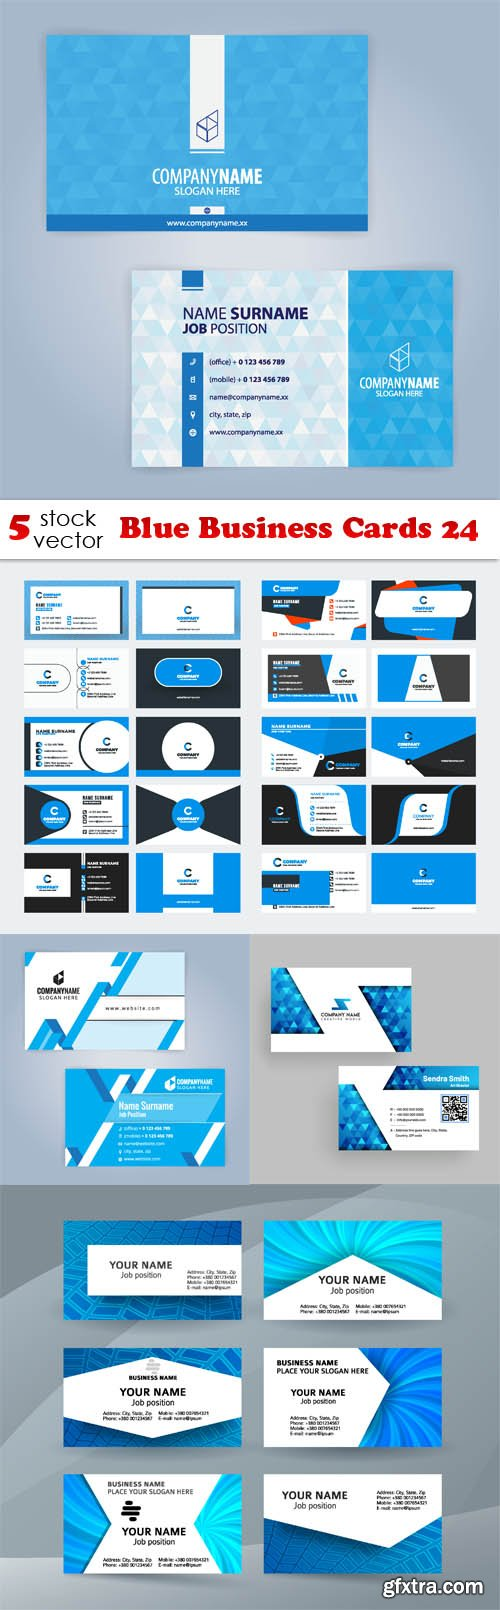 Vectors - Blue Business Cards 24